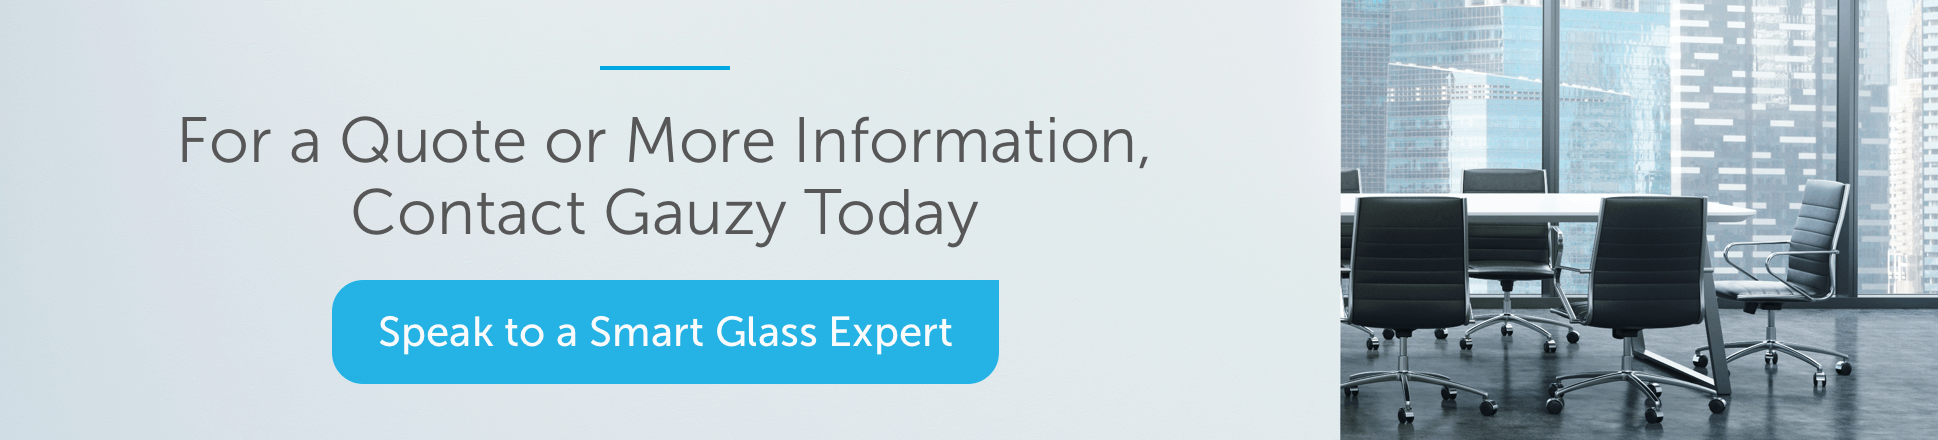 Get information on smart glass from Gauzy